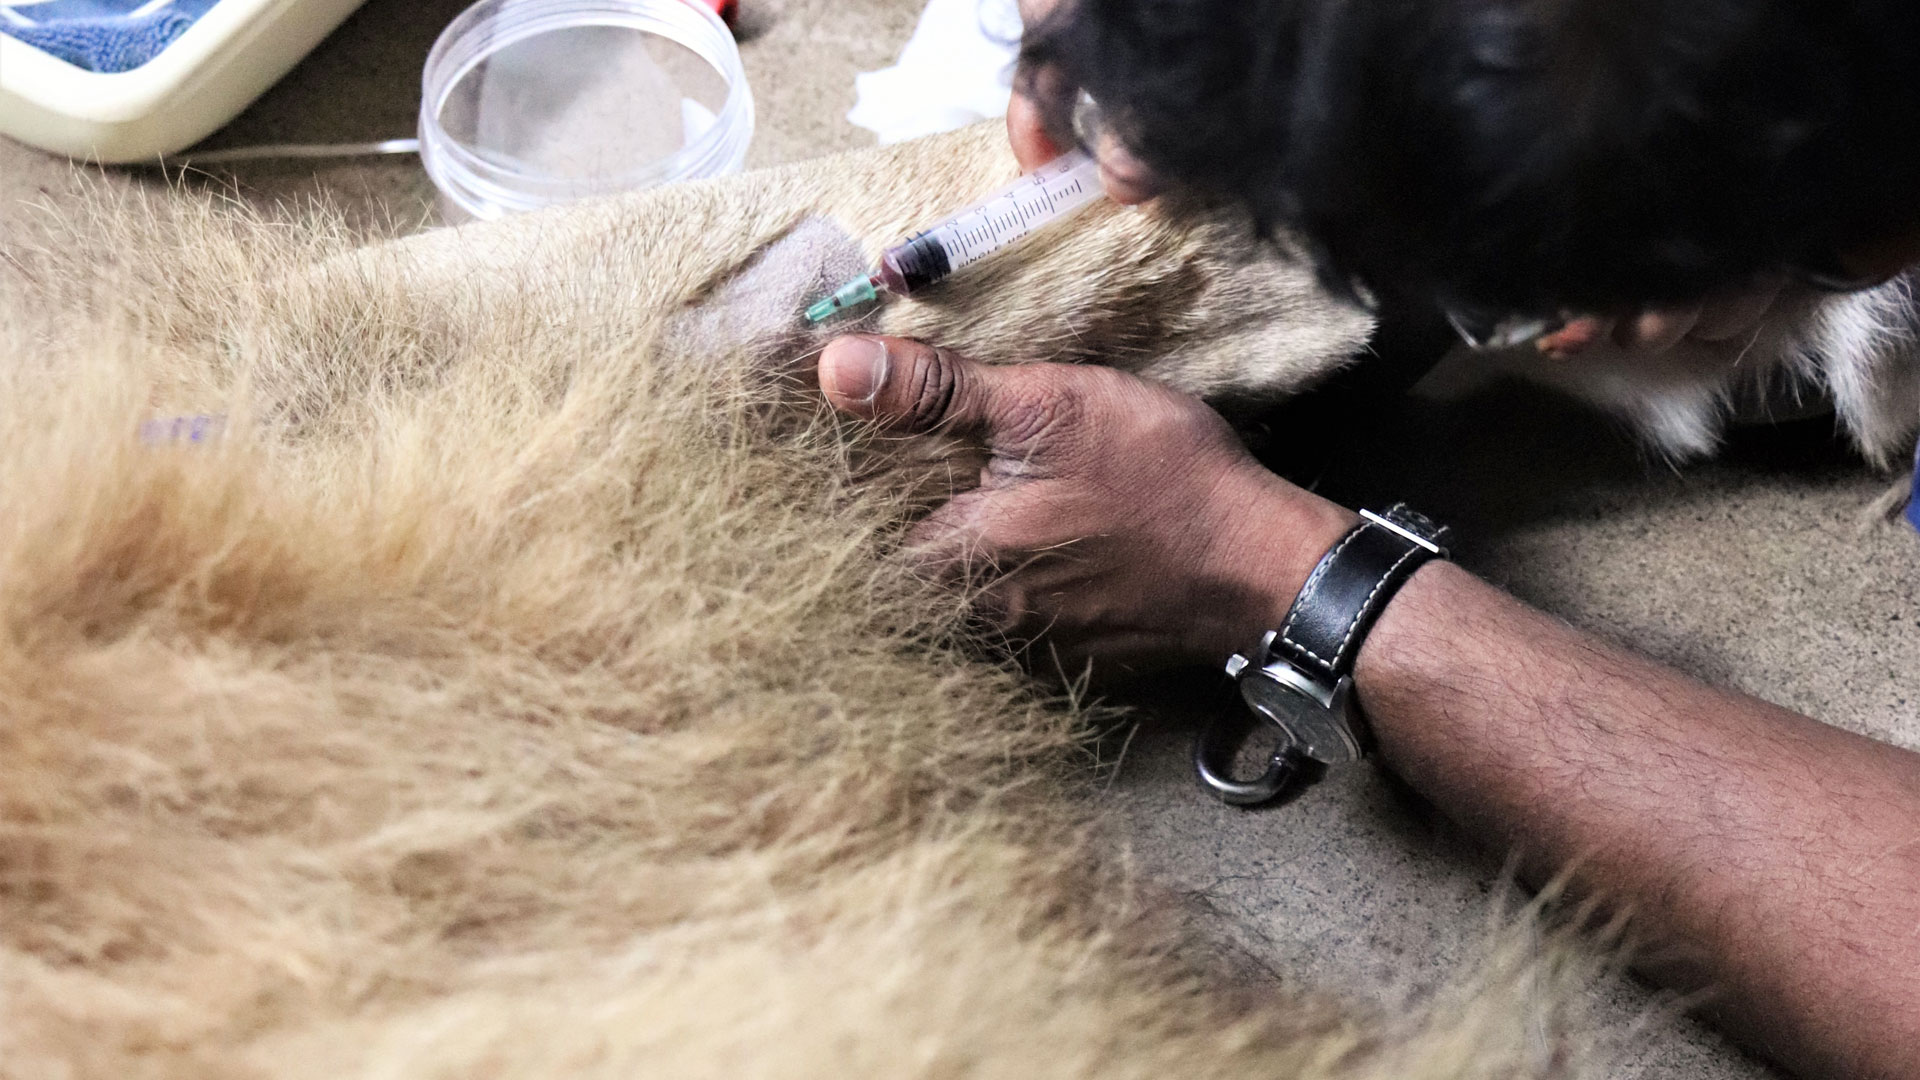 https://rfacdn.nz/zoo/assets/media/lion-vet-procedure-zulu-gallery-1.jpg